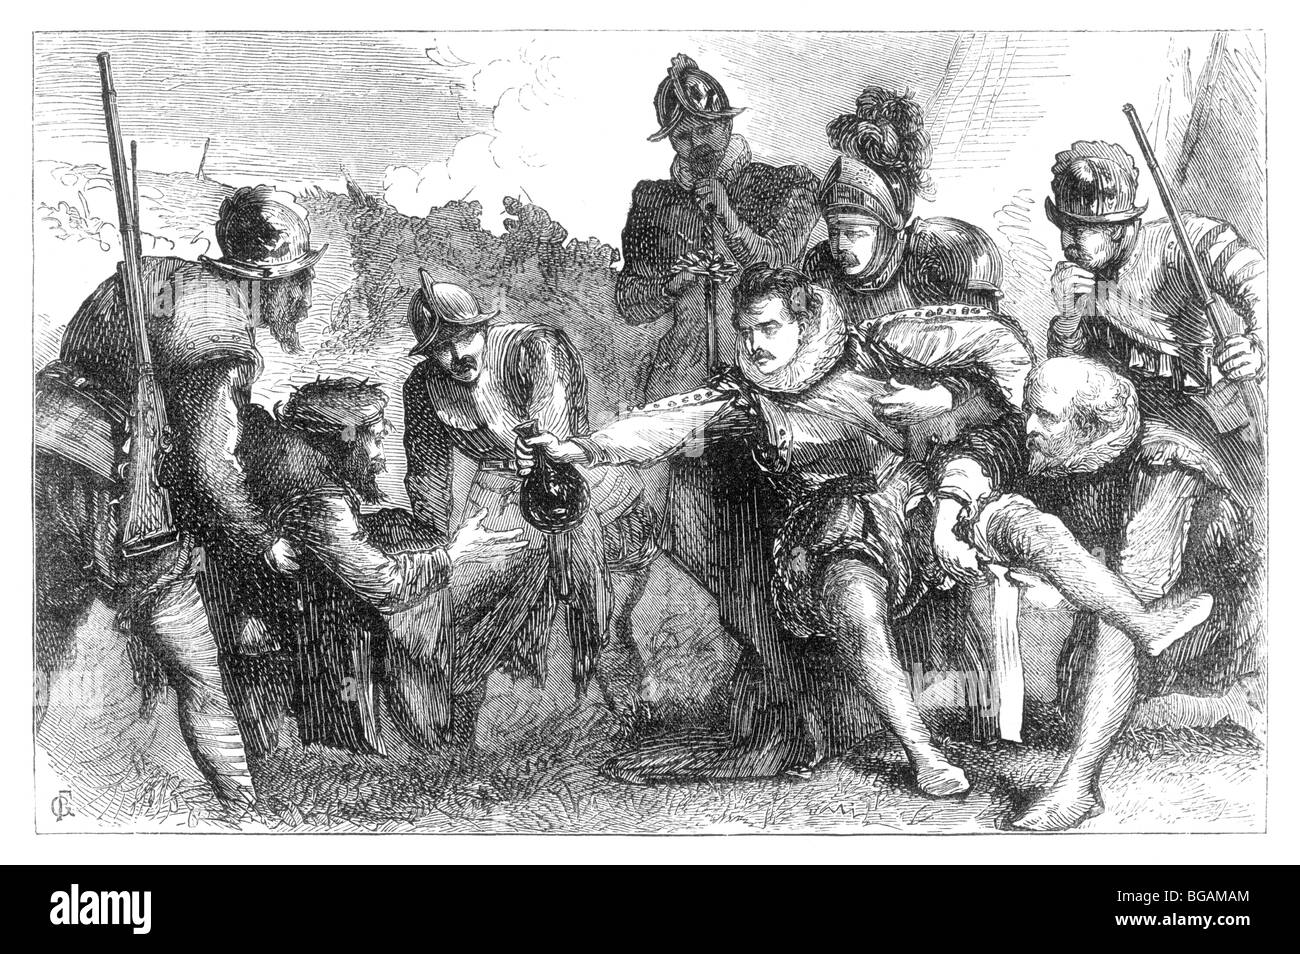 Illustration; The Mortally Wounded Sir Philip Sidney at the Battle of Zutphen - Stock Image